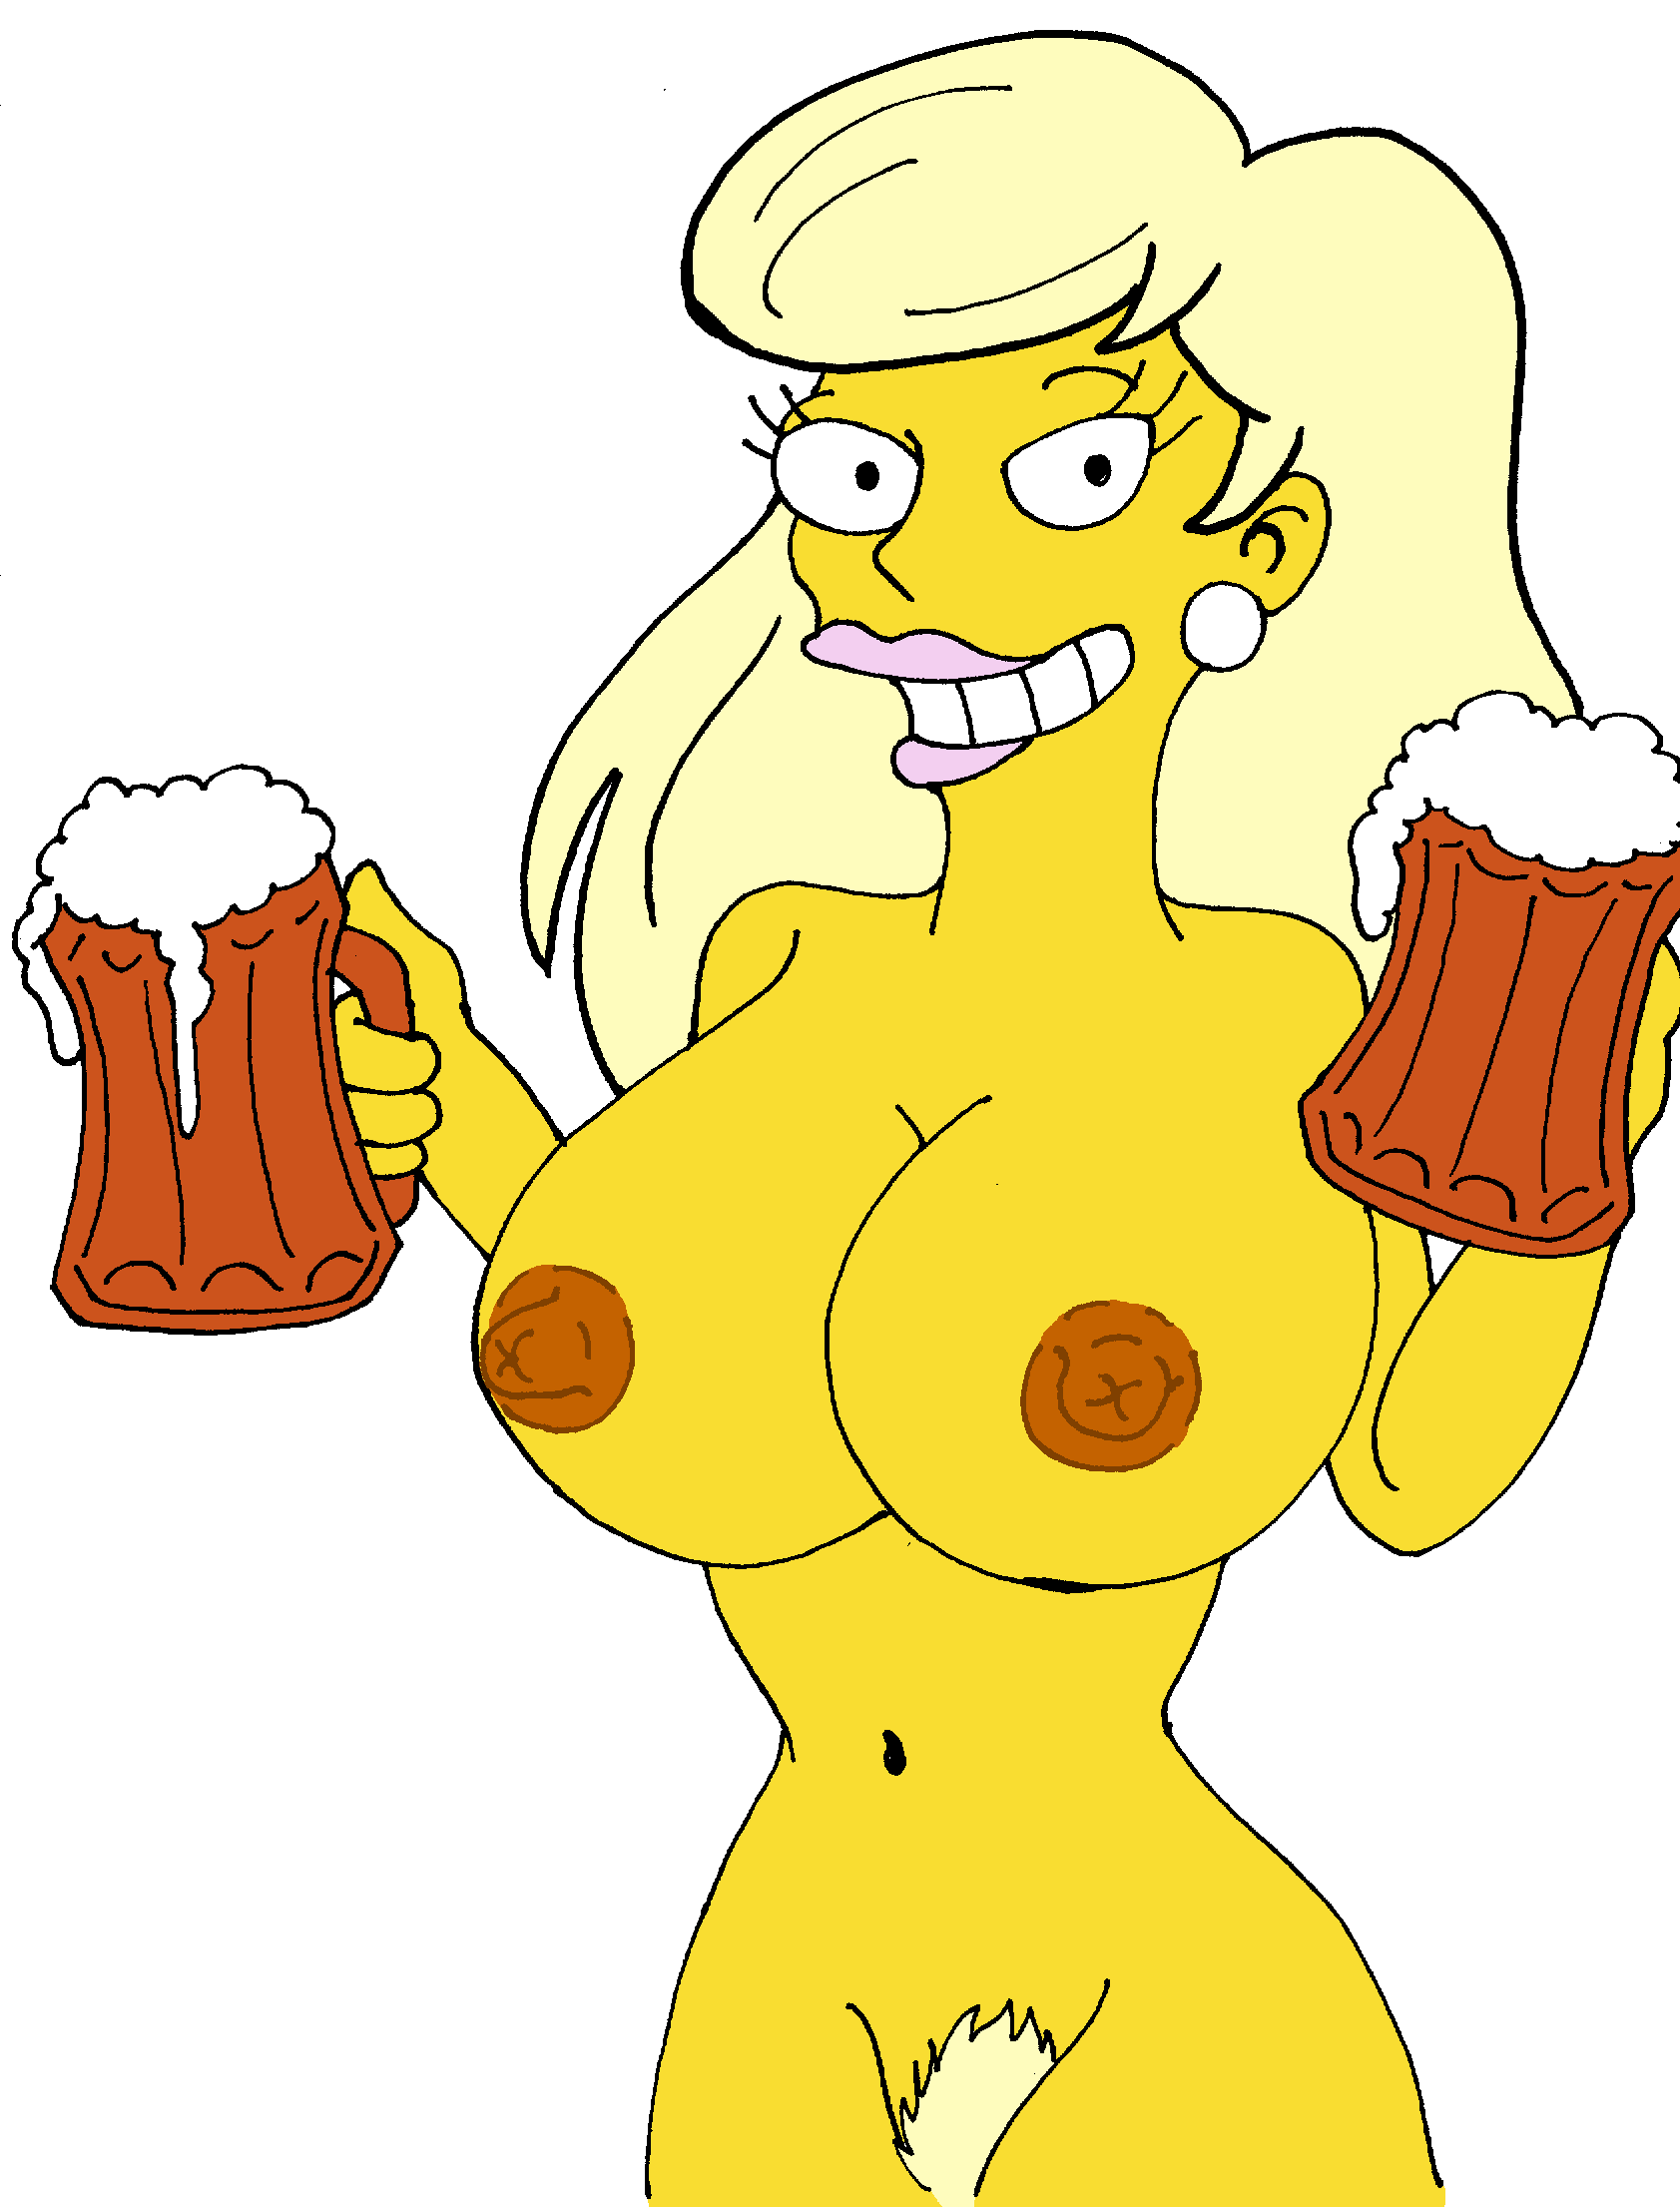 the naked from marge simpsons Kung fu panda boss wolf